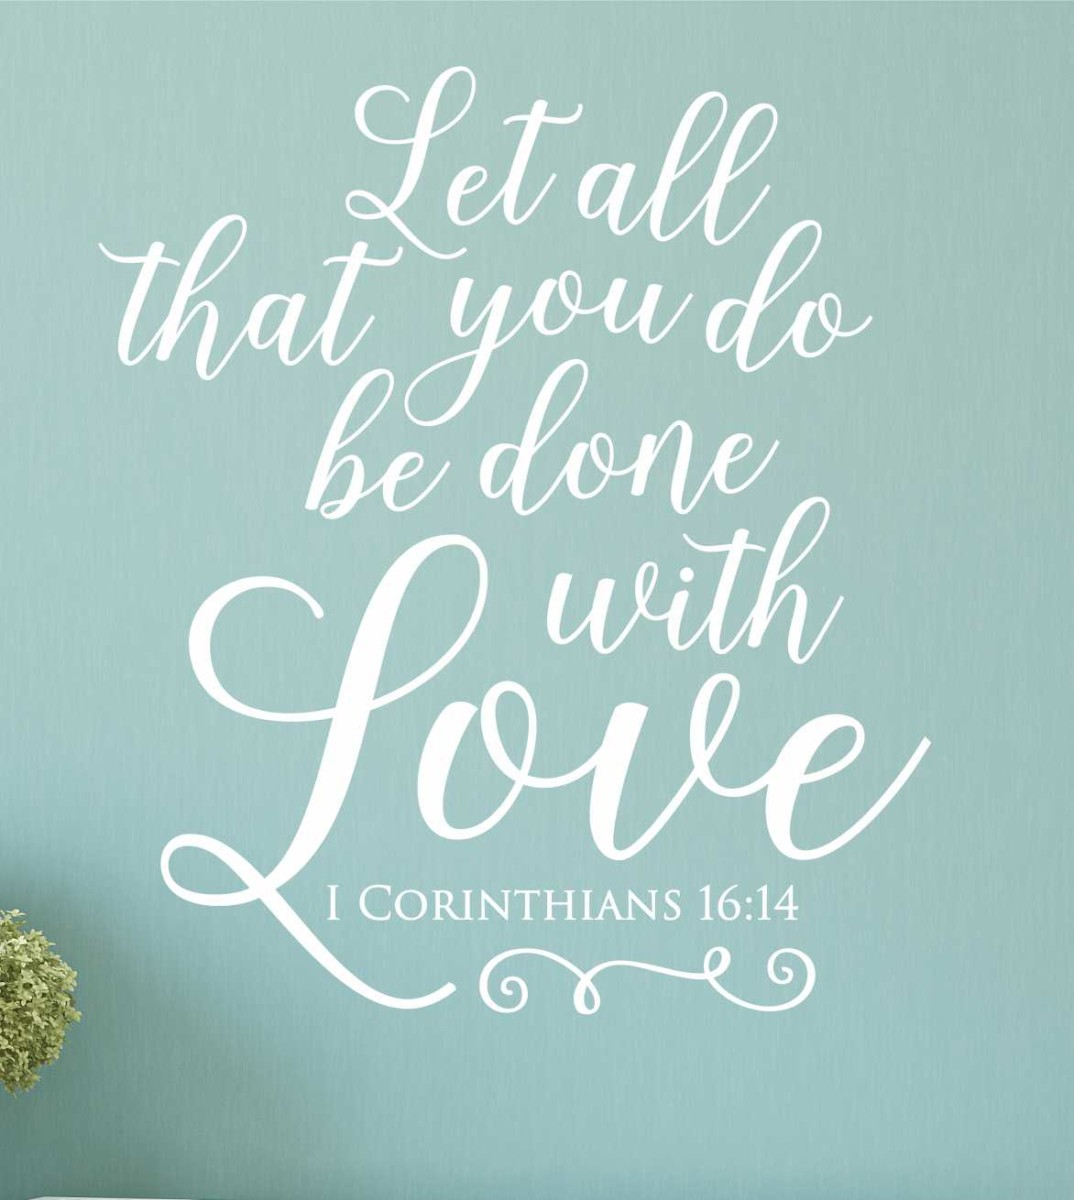 Download 1 Corinthians 16:14 - Let All That You Do Be Done In Love ...